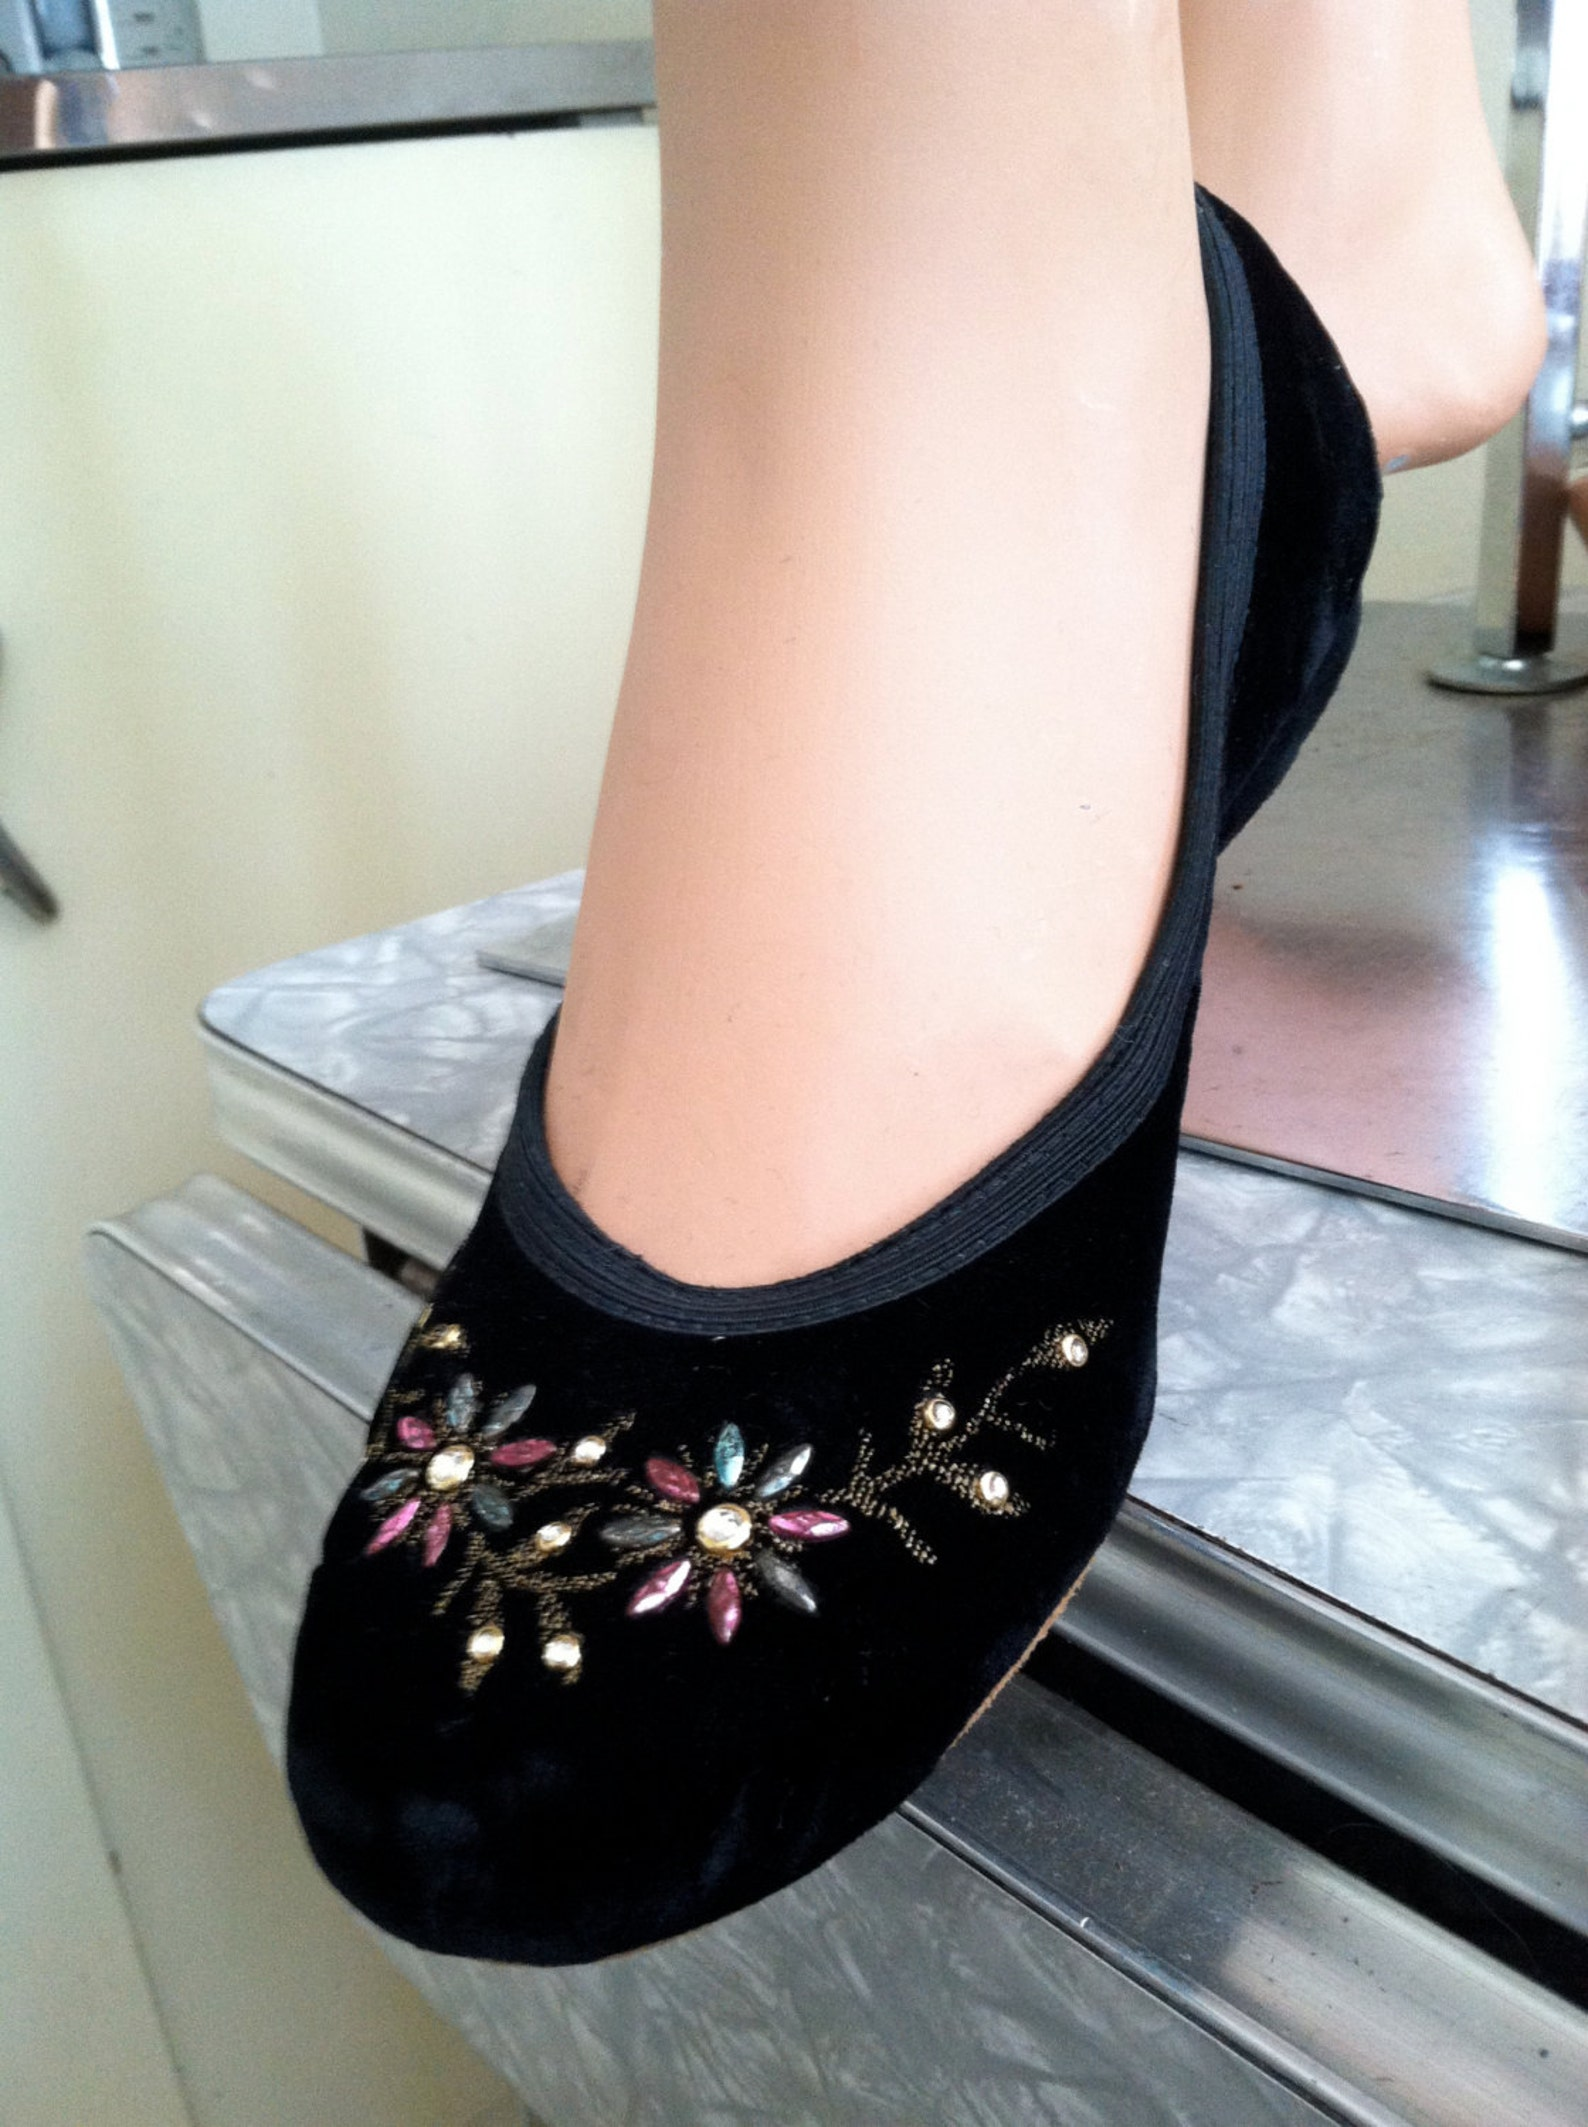 vintage black velvet 1950s rockin' lil jiving ballet flats w/ rhinestones & colored studs- designer 50s velour swing shoes s